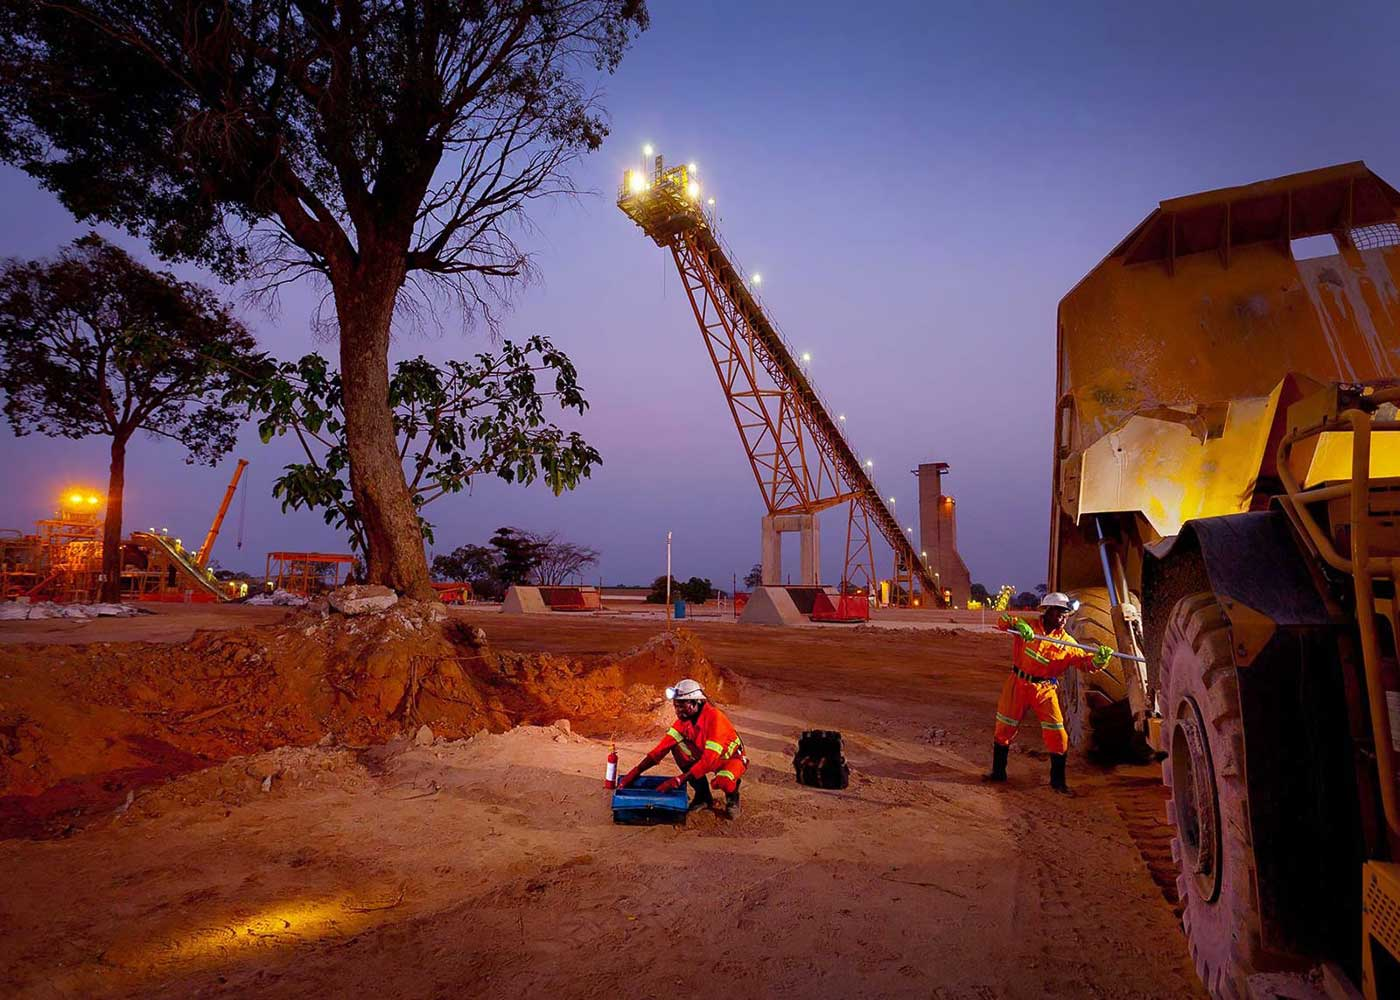 Mechanic maintain mining machine at night - people in mining photography collection